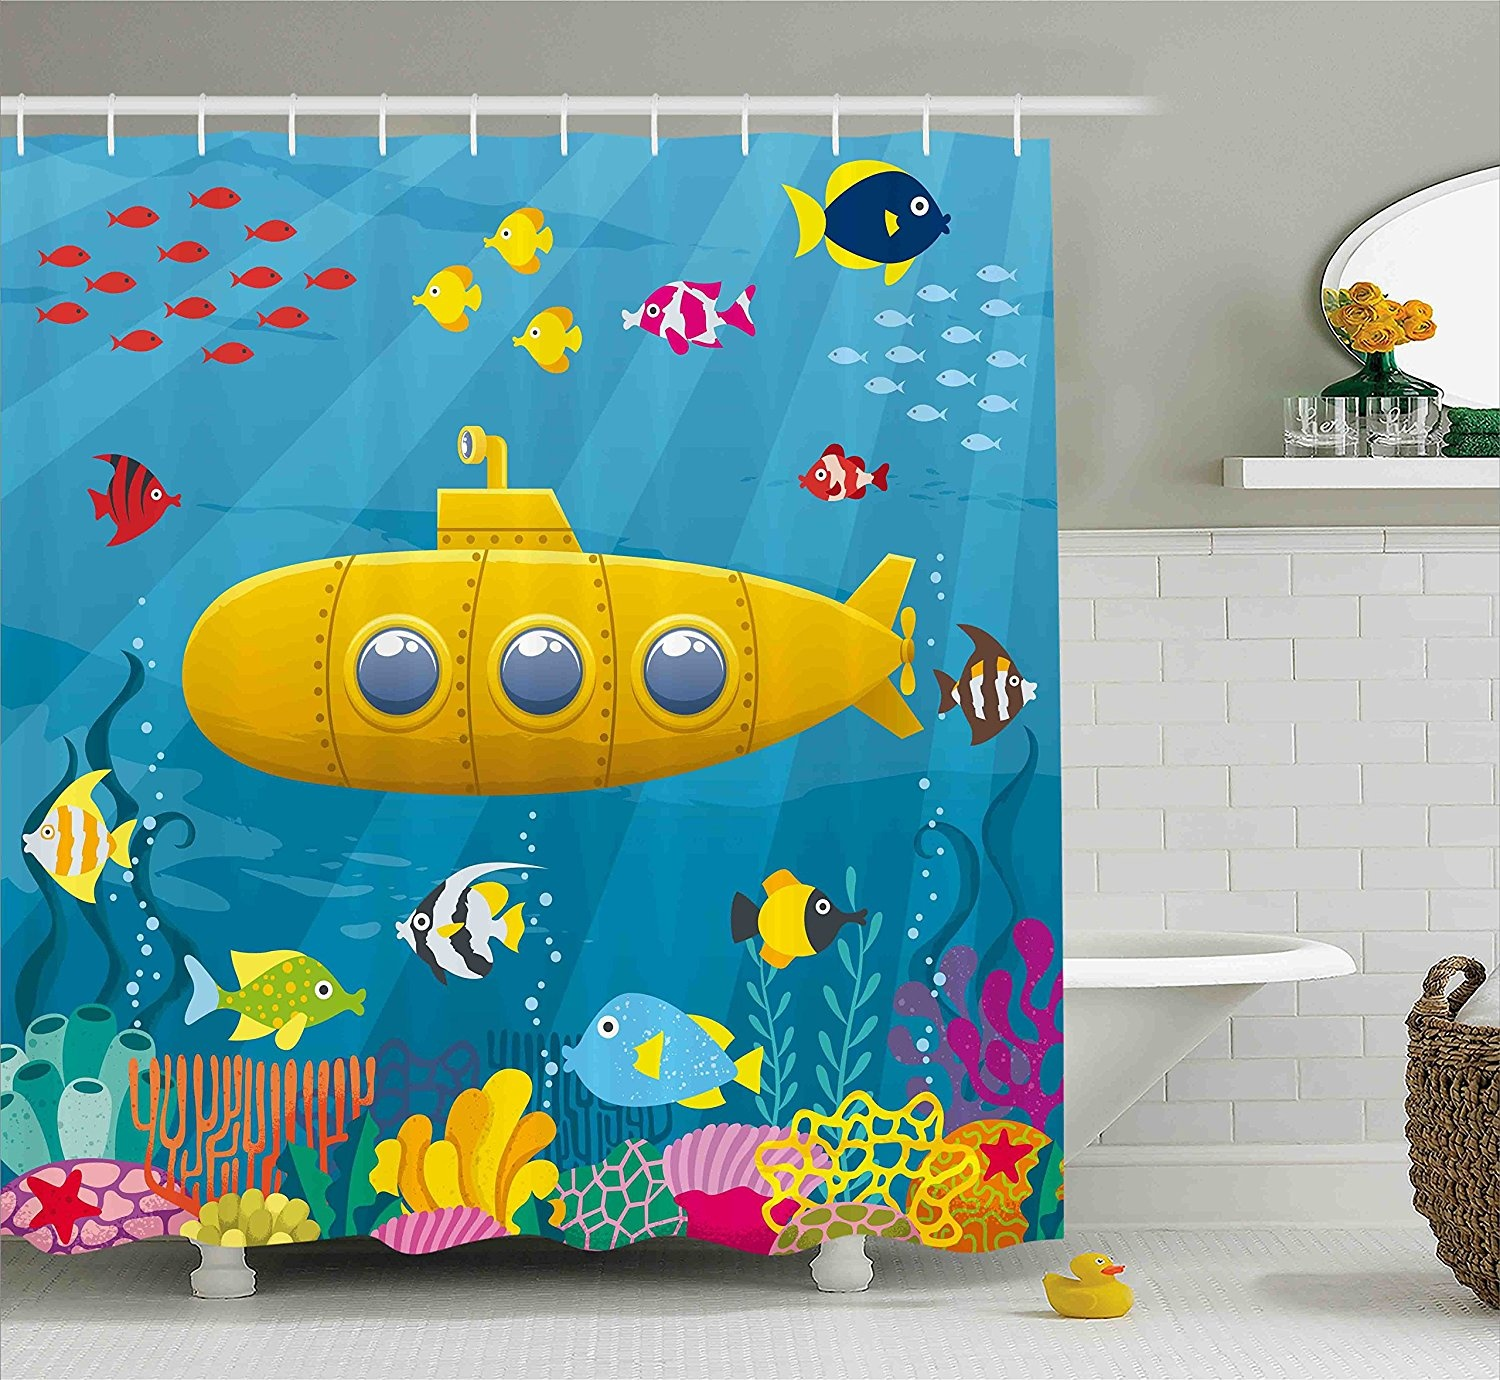 Yellow Submarine Shower Curtain Set By Ambesonne Coral Reef With Colourful Fish Ocean Life Marine Creatures Tropical Kids Fabric Bathroom Decor With